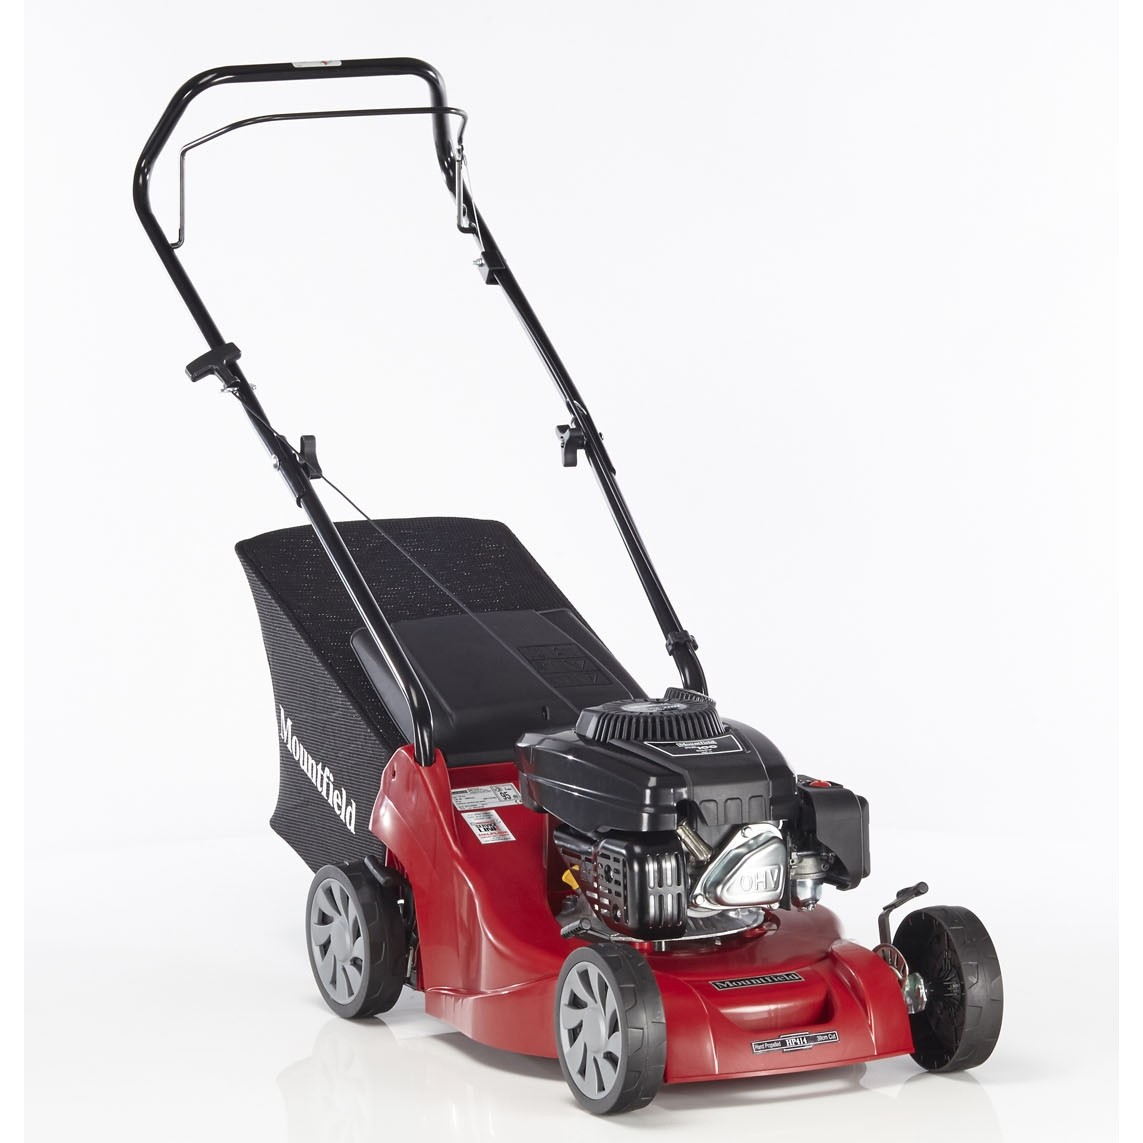 Mountfield HP414 39cm lawn mower